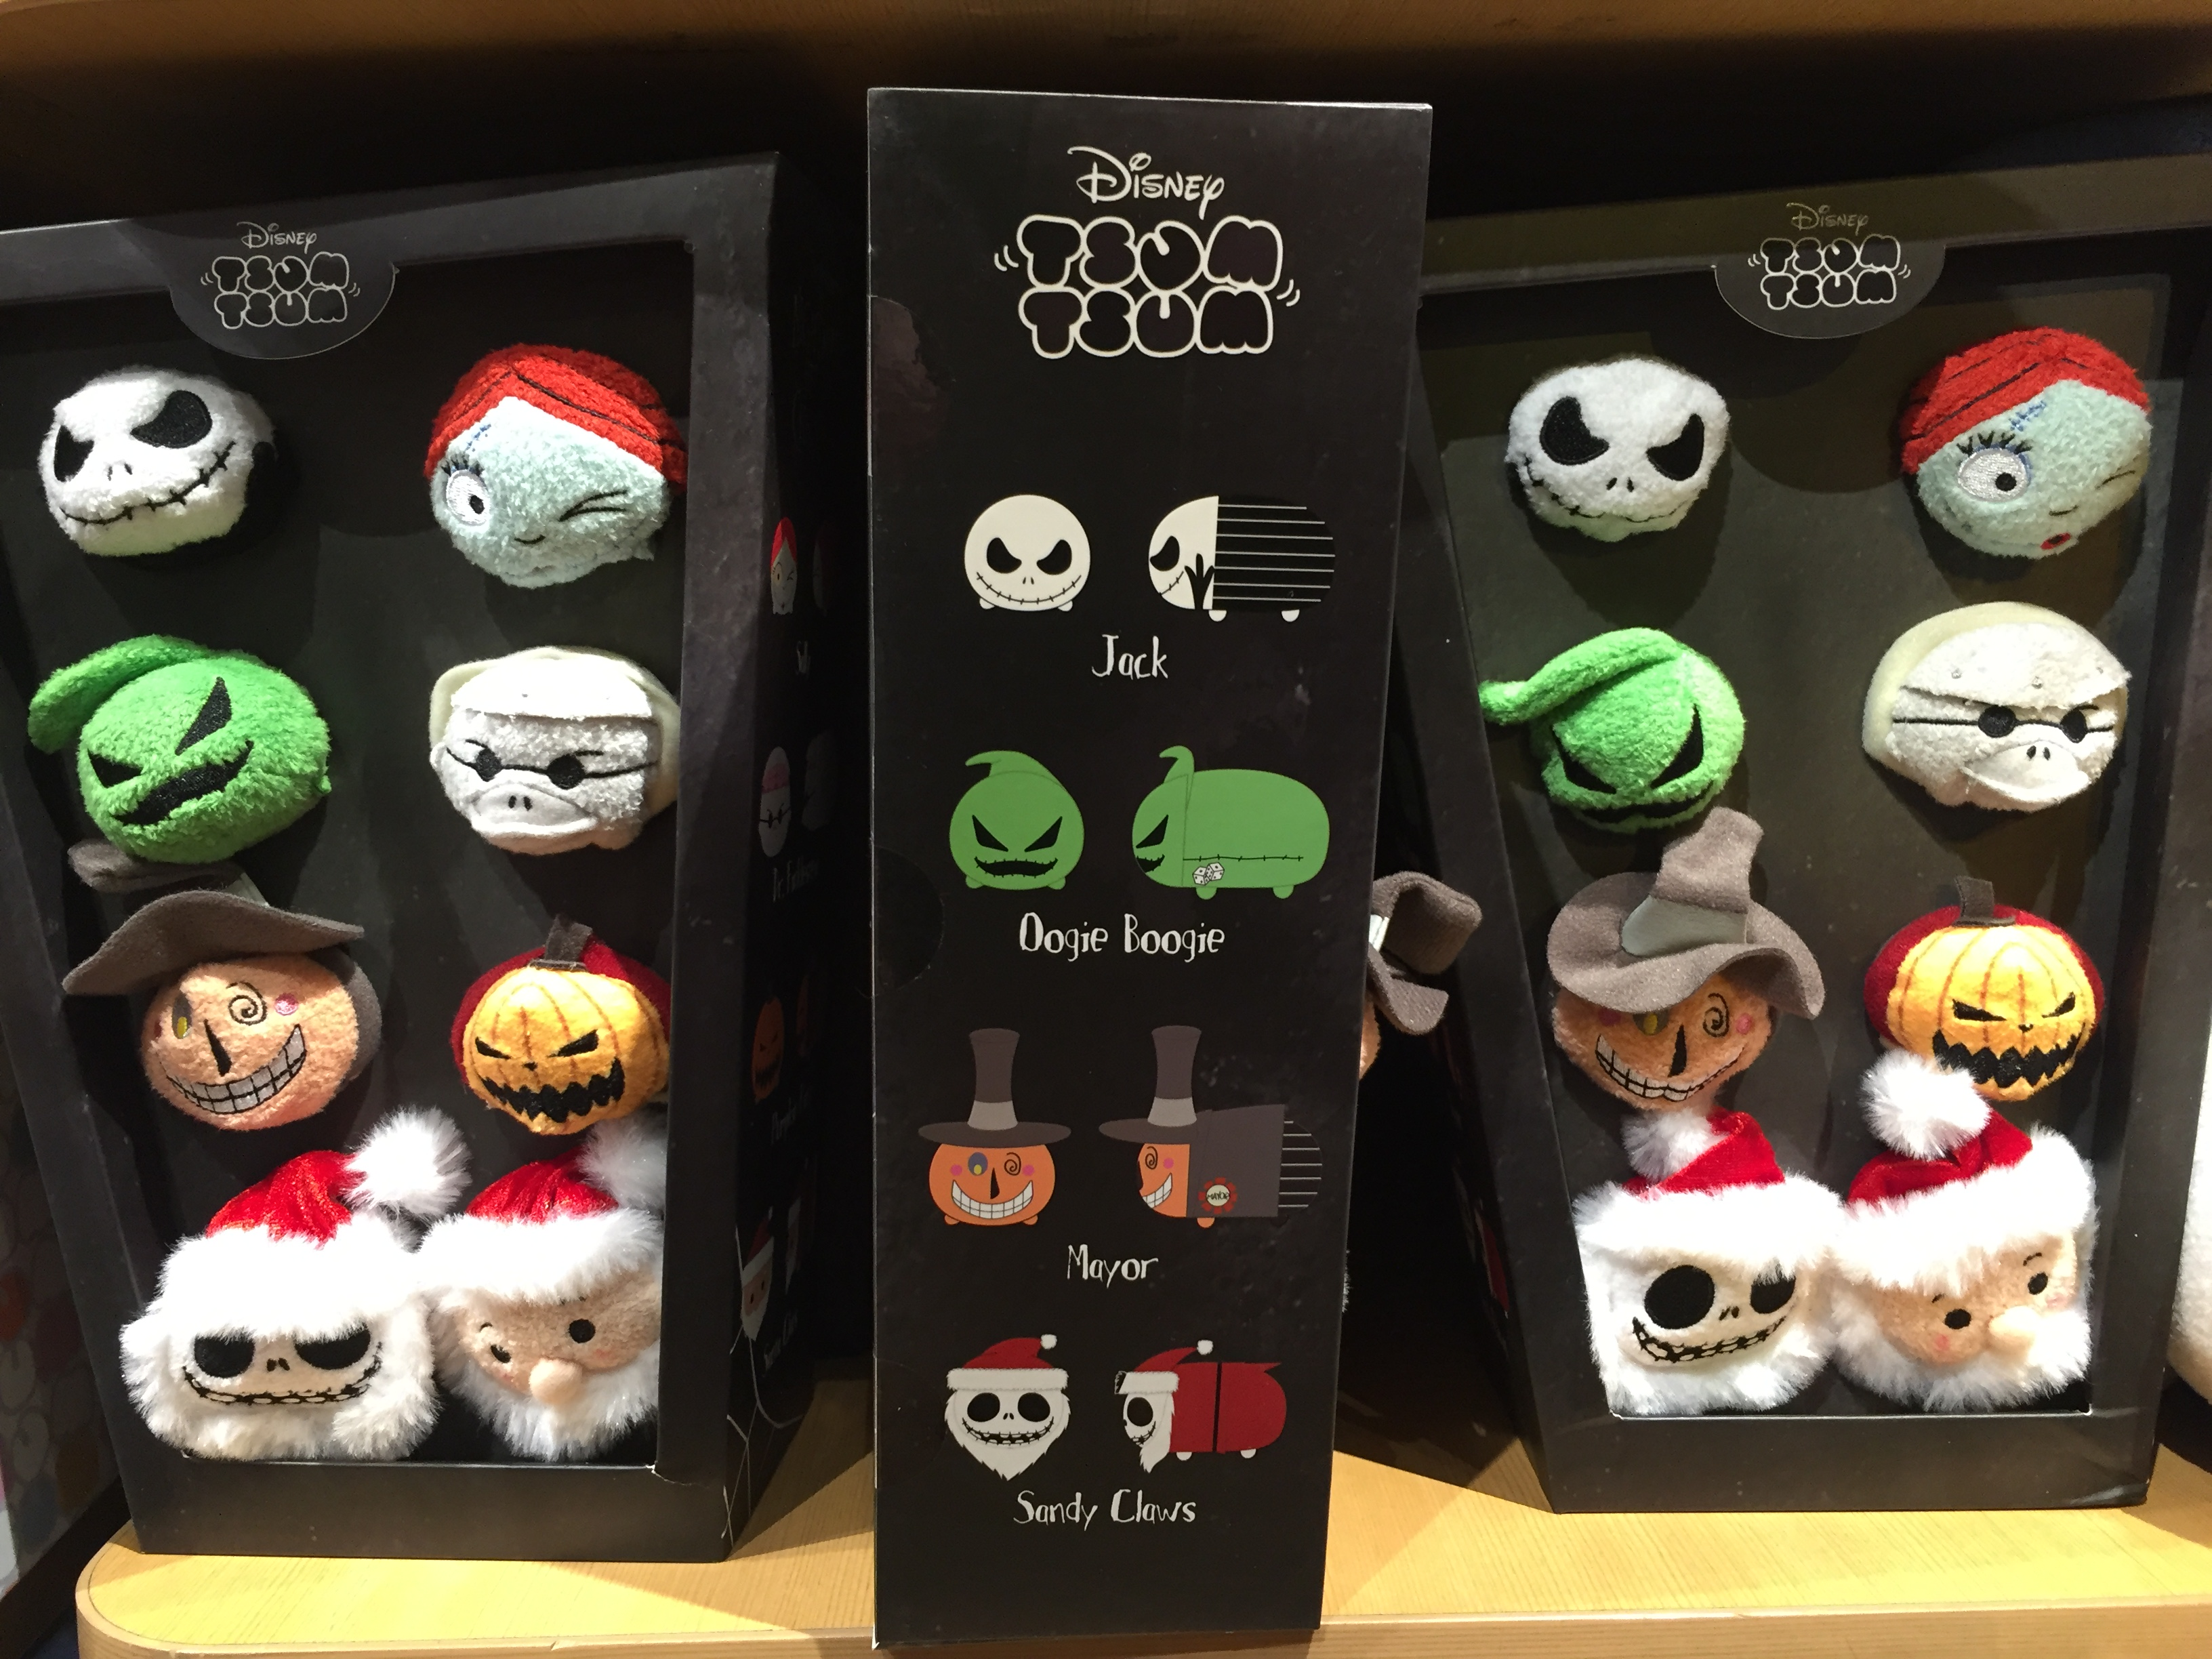 Mouseplanet - Pins, Vinylmation, and Tsum Tsum, oh my! by Gregg Jacobs